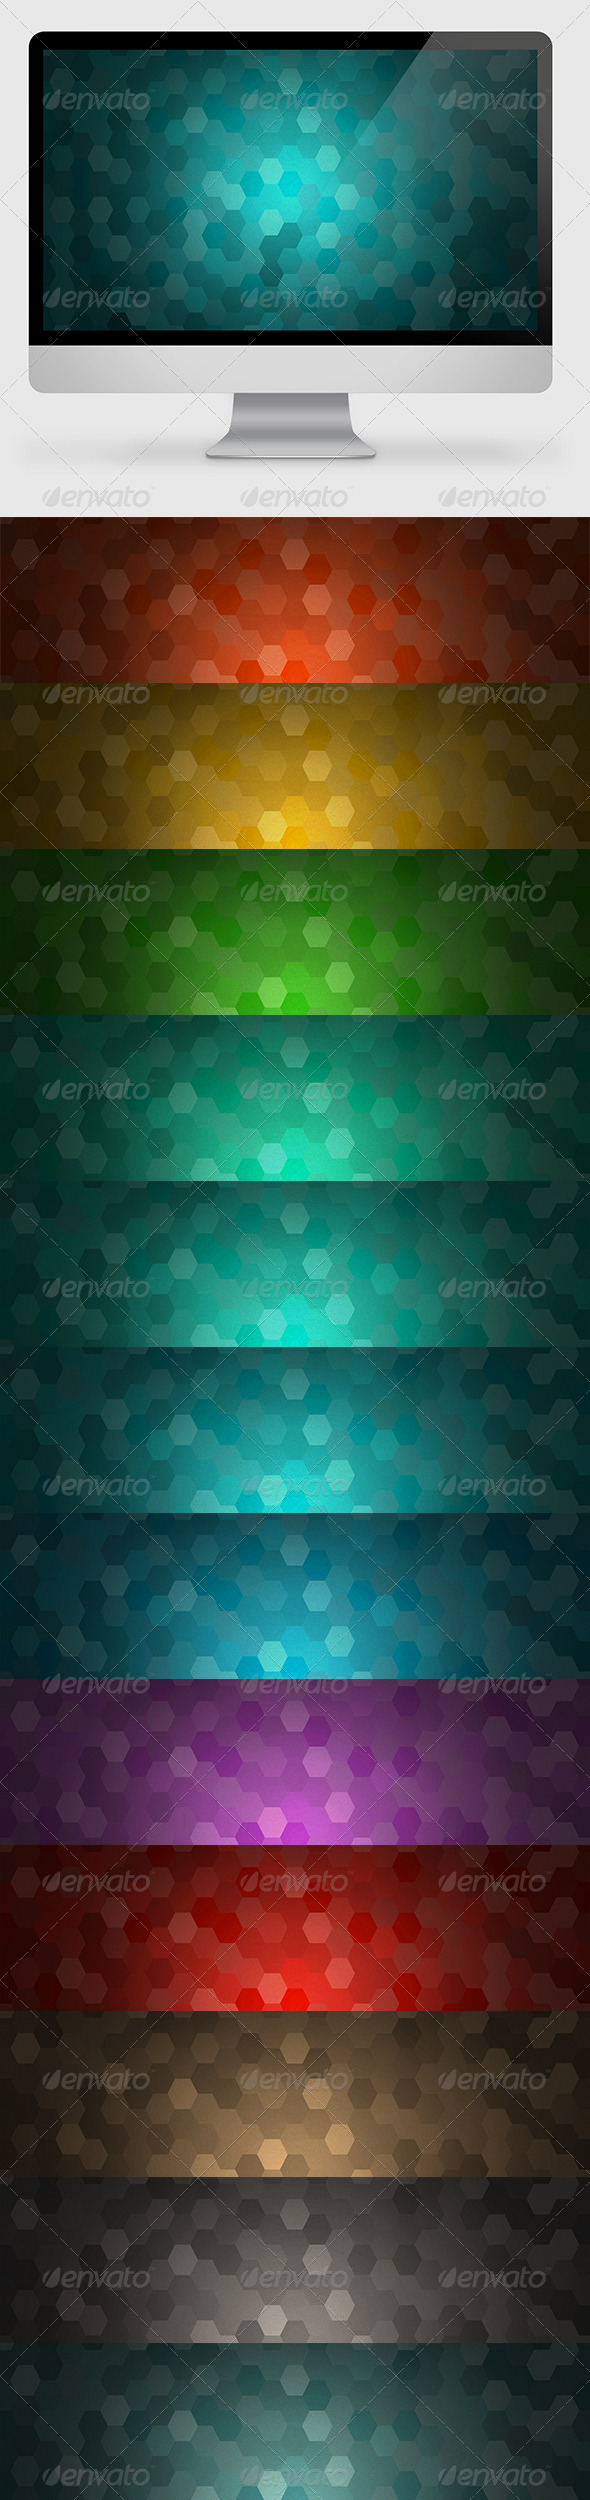 12 Hexagon Backgrounds - Abstract Backgrounds